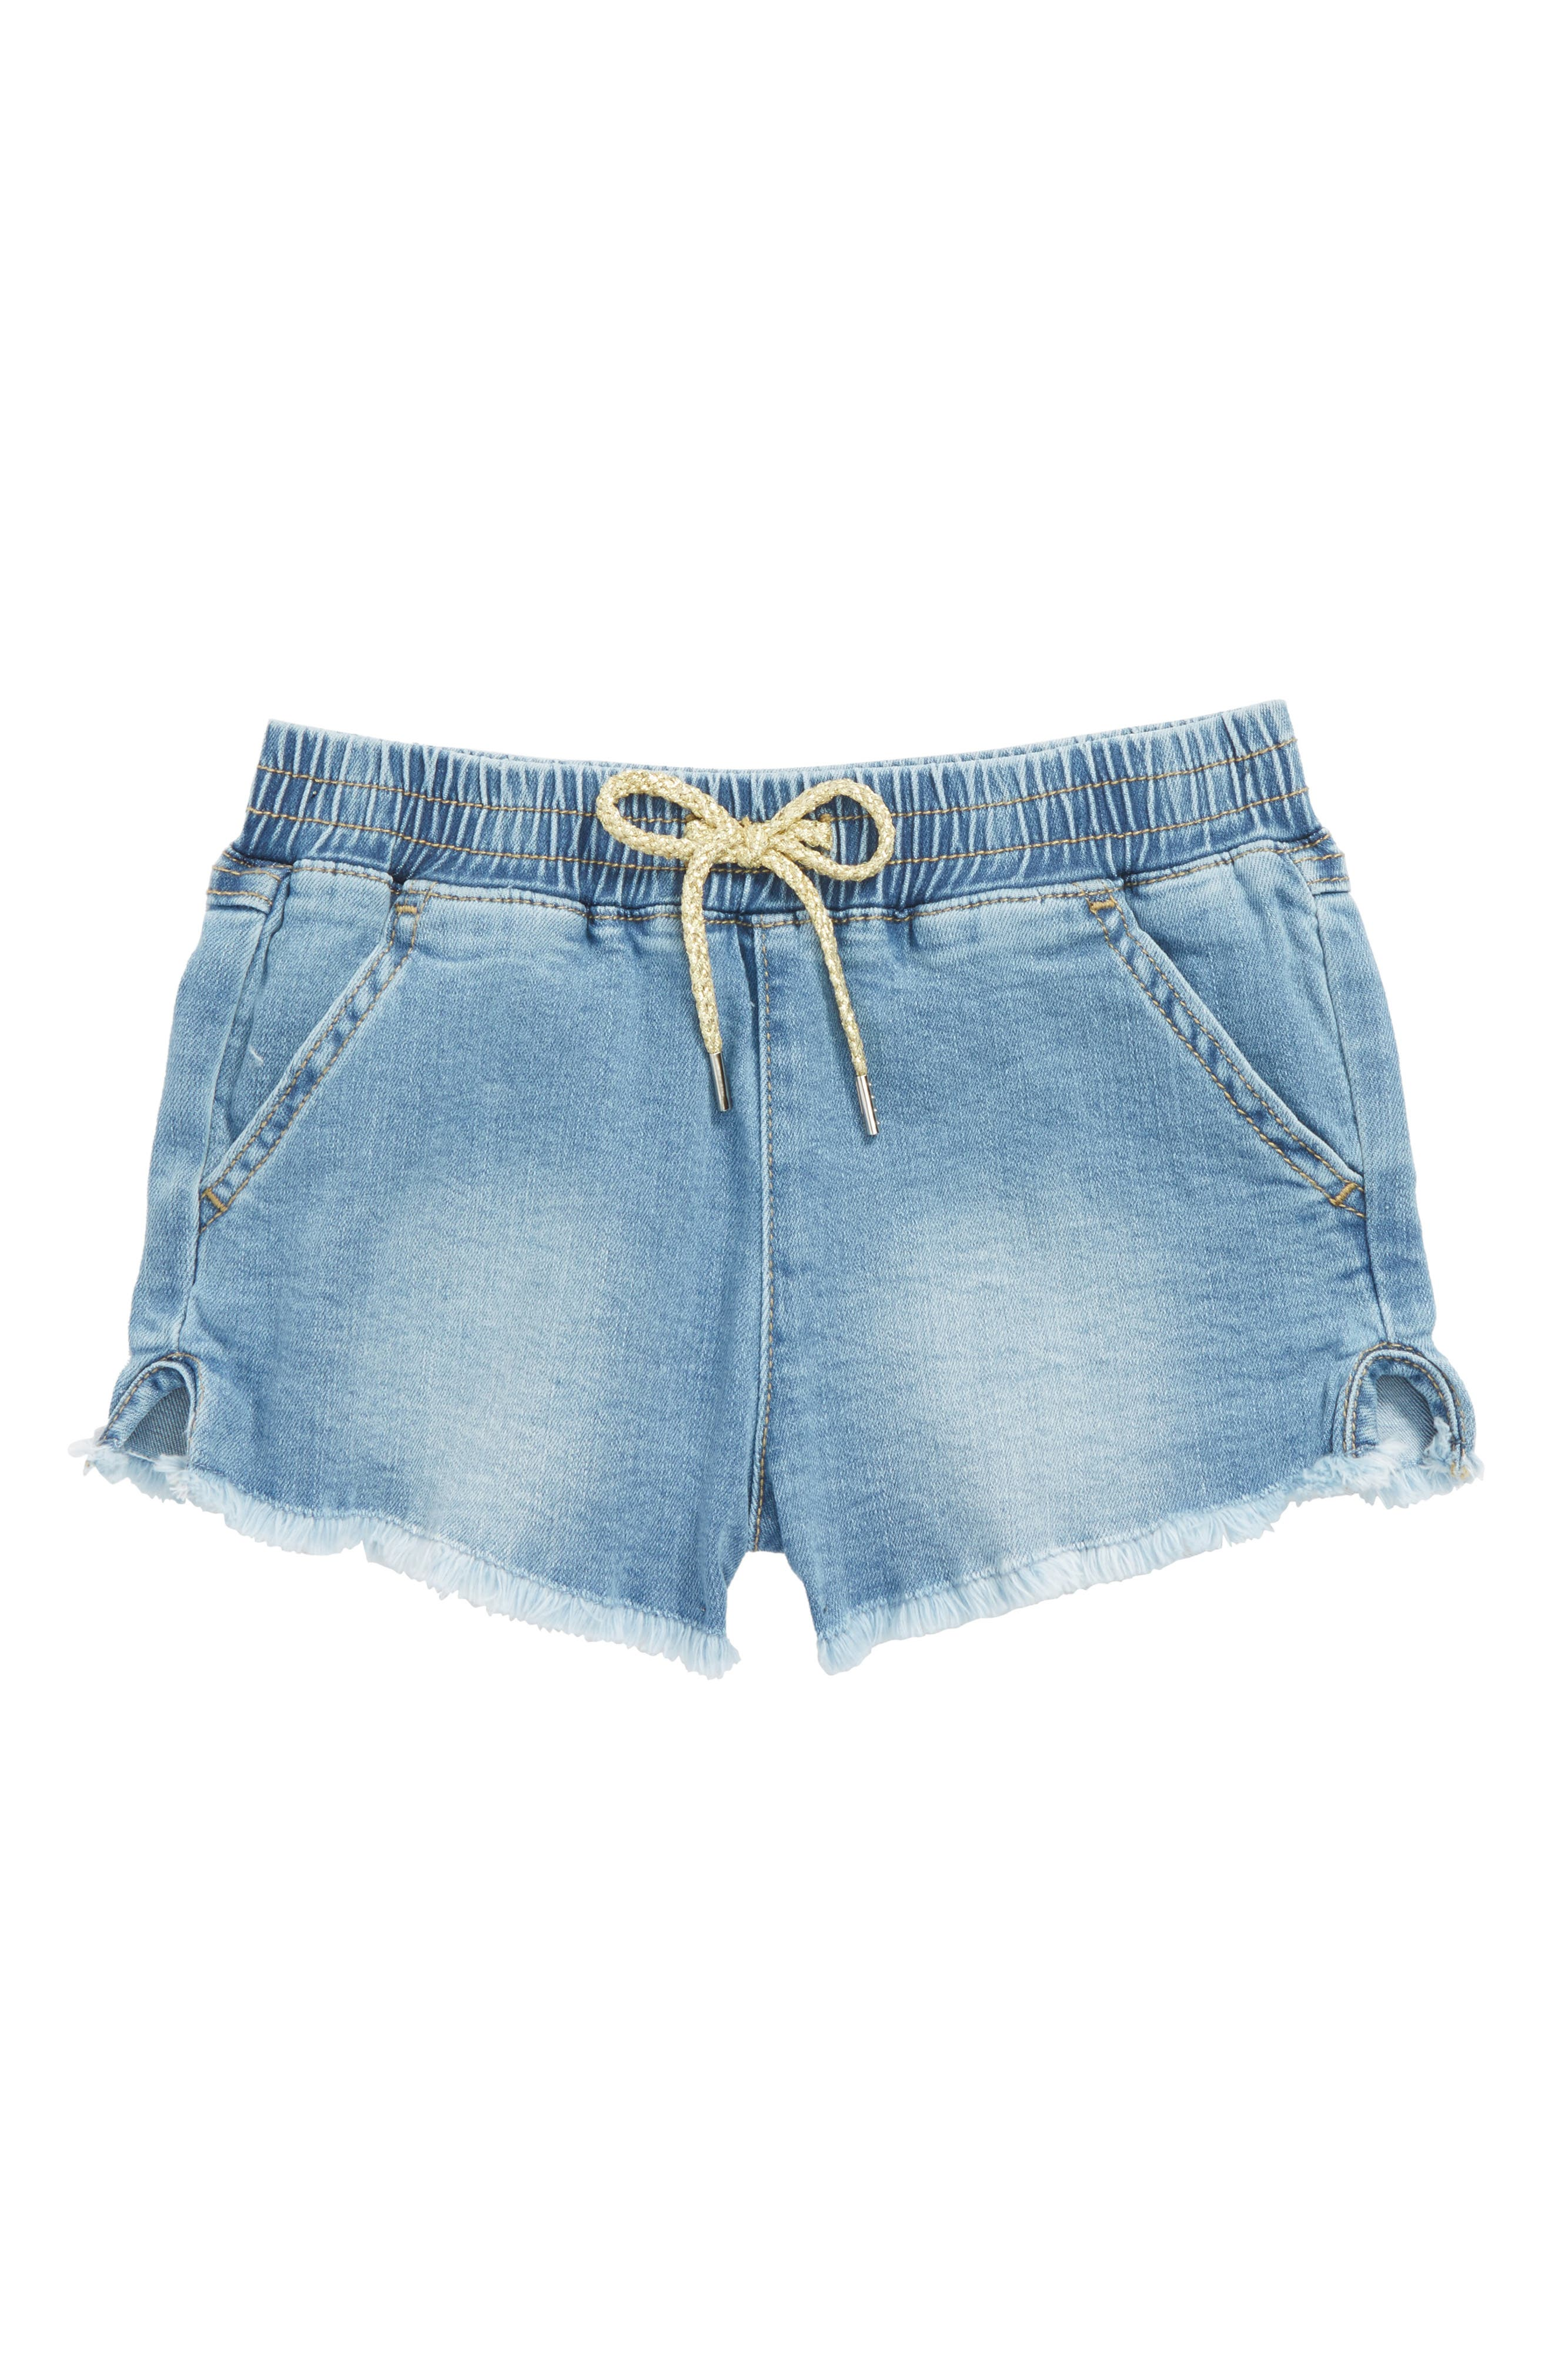 Main Image - ag adriano goldschmied kids The Khloe Chambray Shorts (Big Girls)